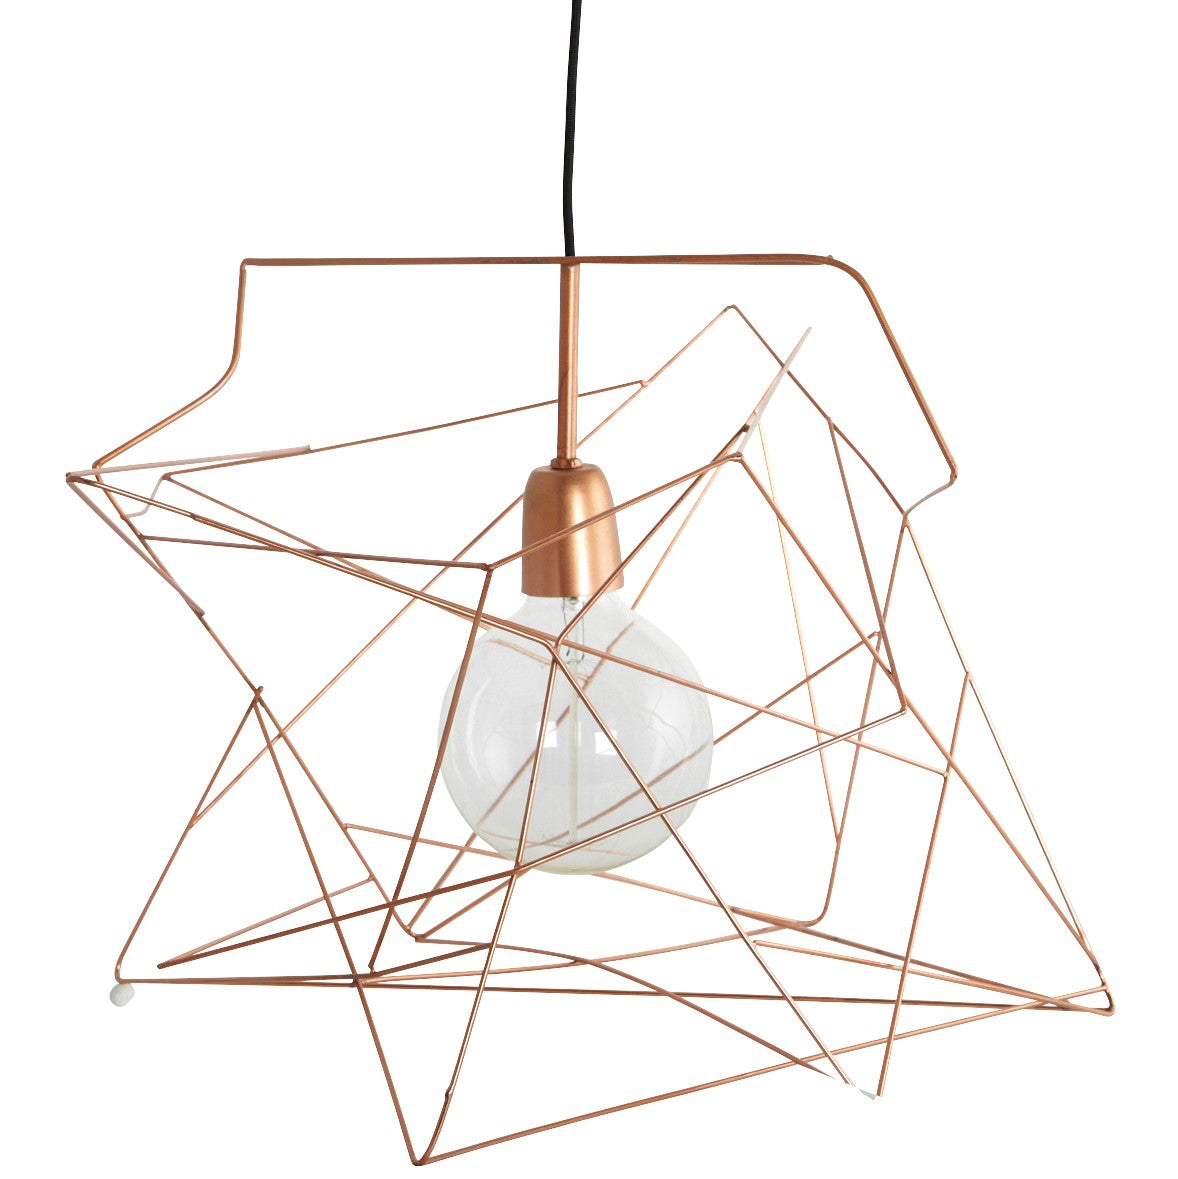 Asymmetric Copper Ceiling Light Shade by House Doctor